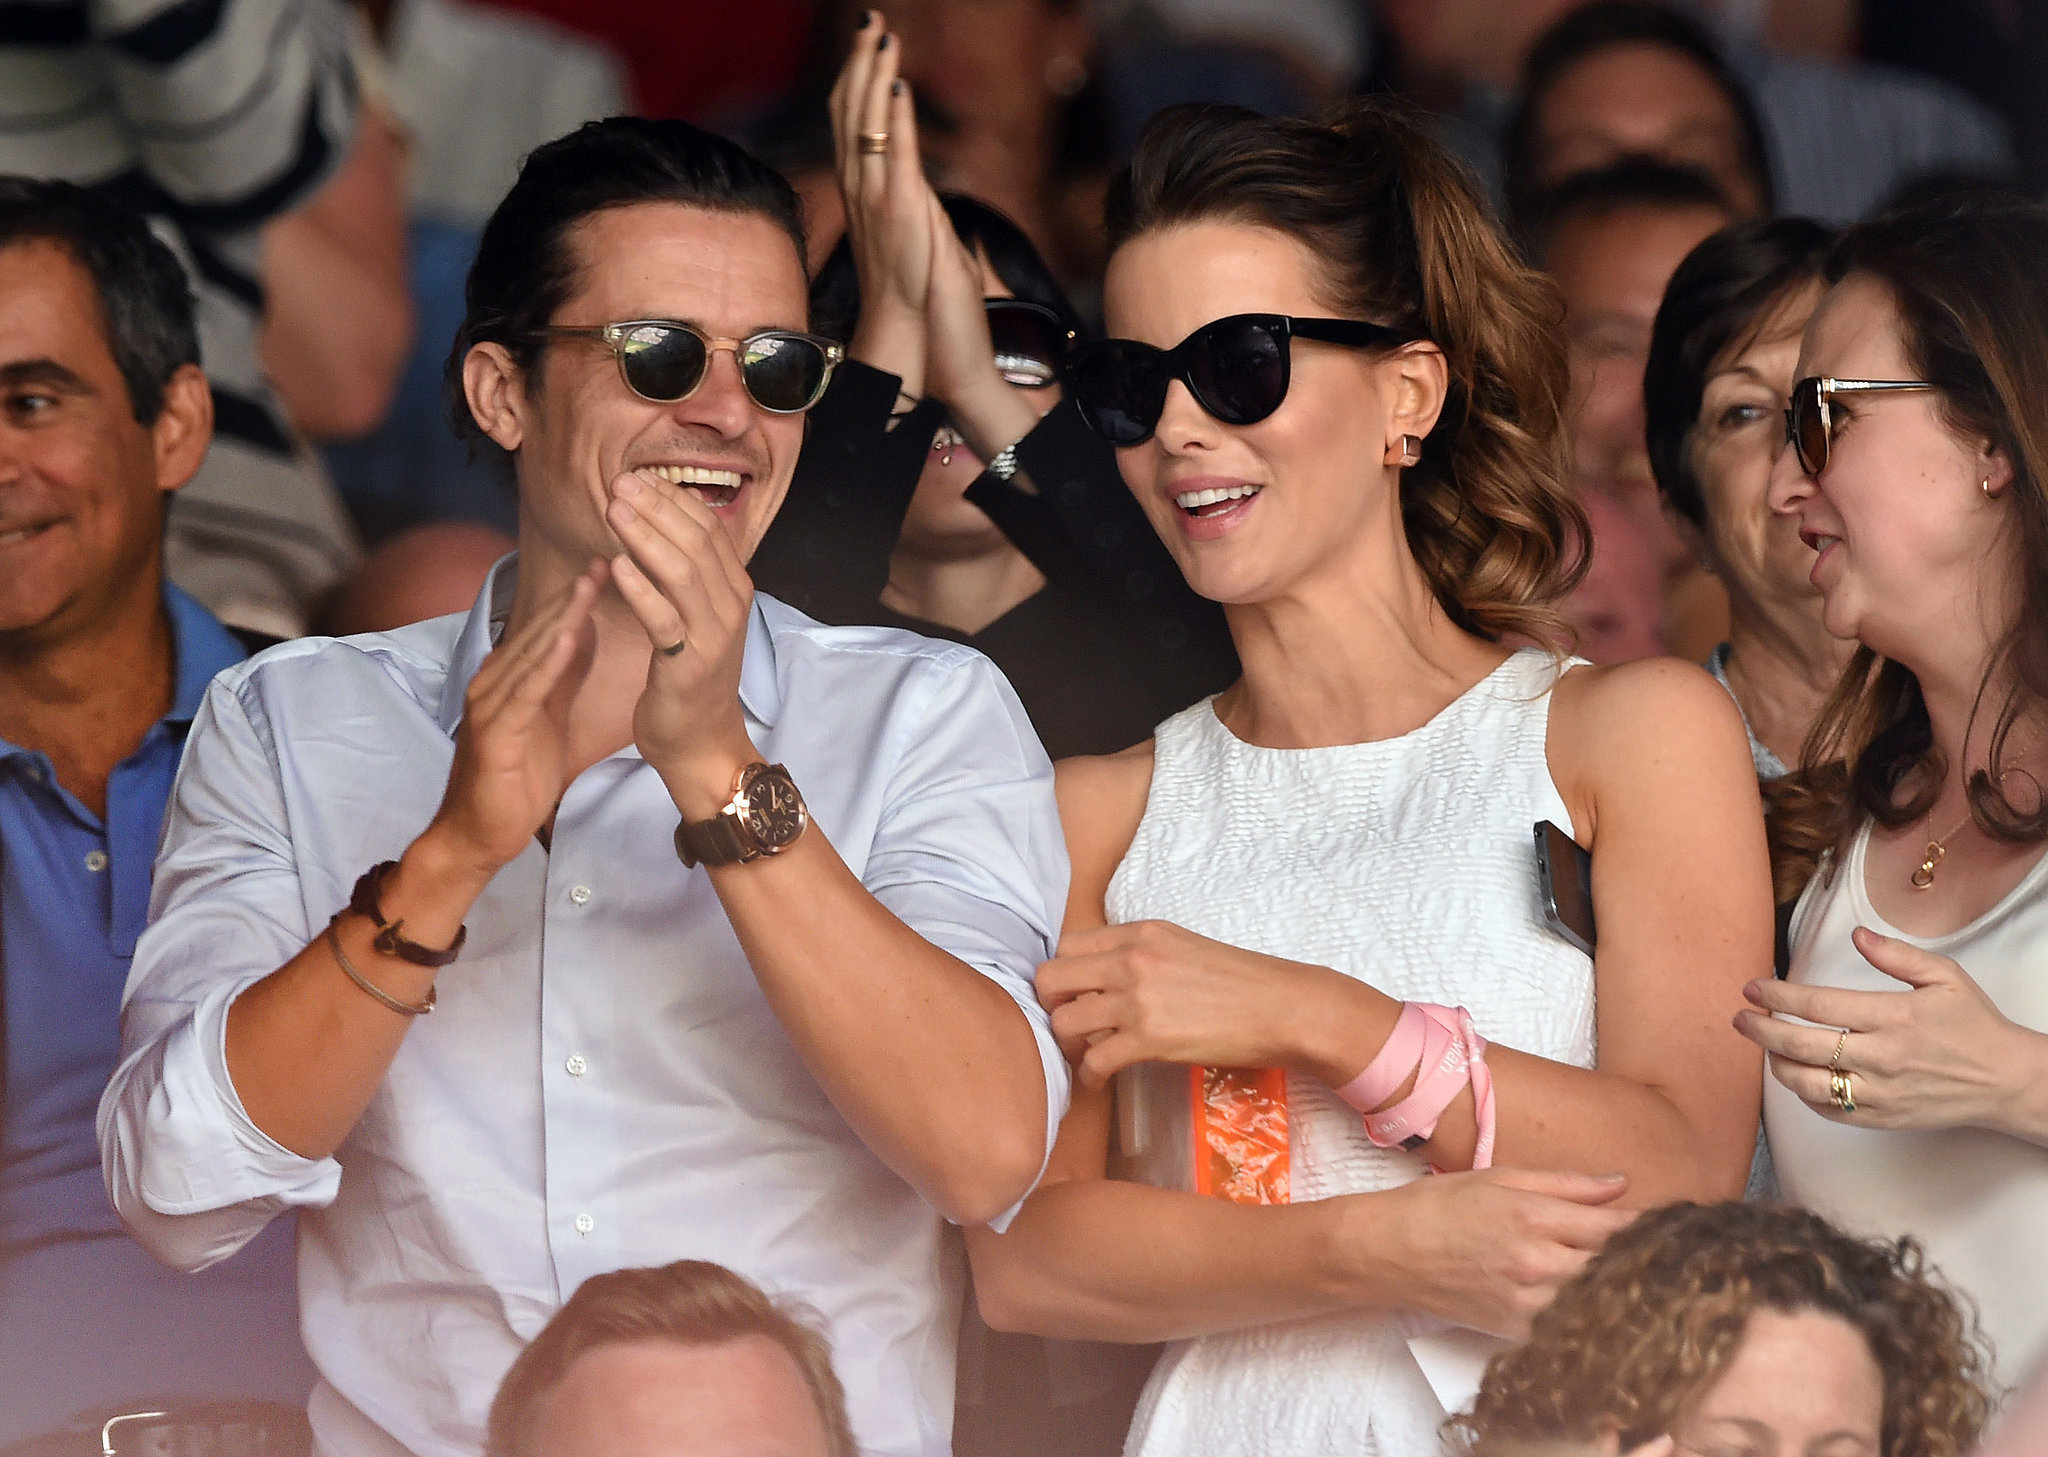 What Tennis Match? It's All About Celebrities at Wimbledon